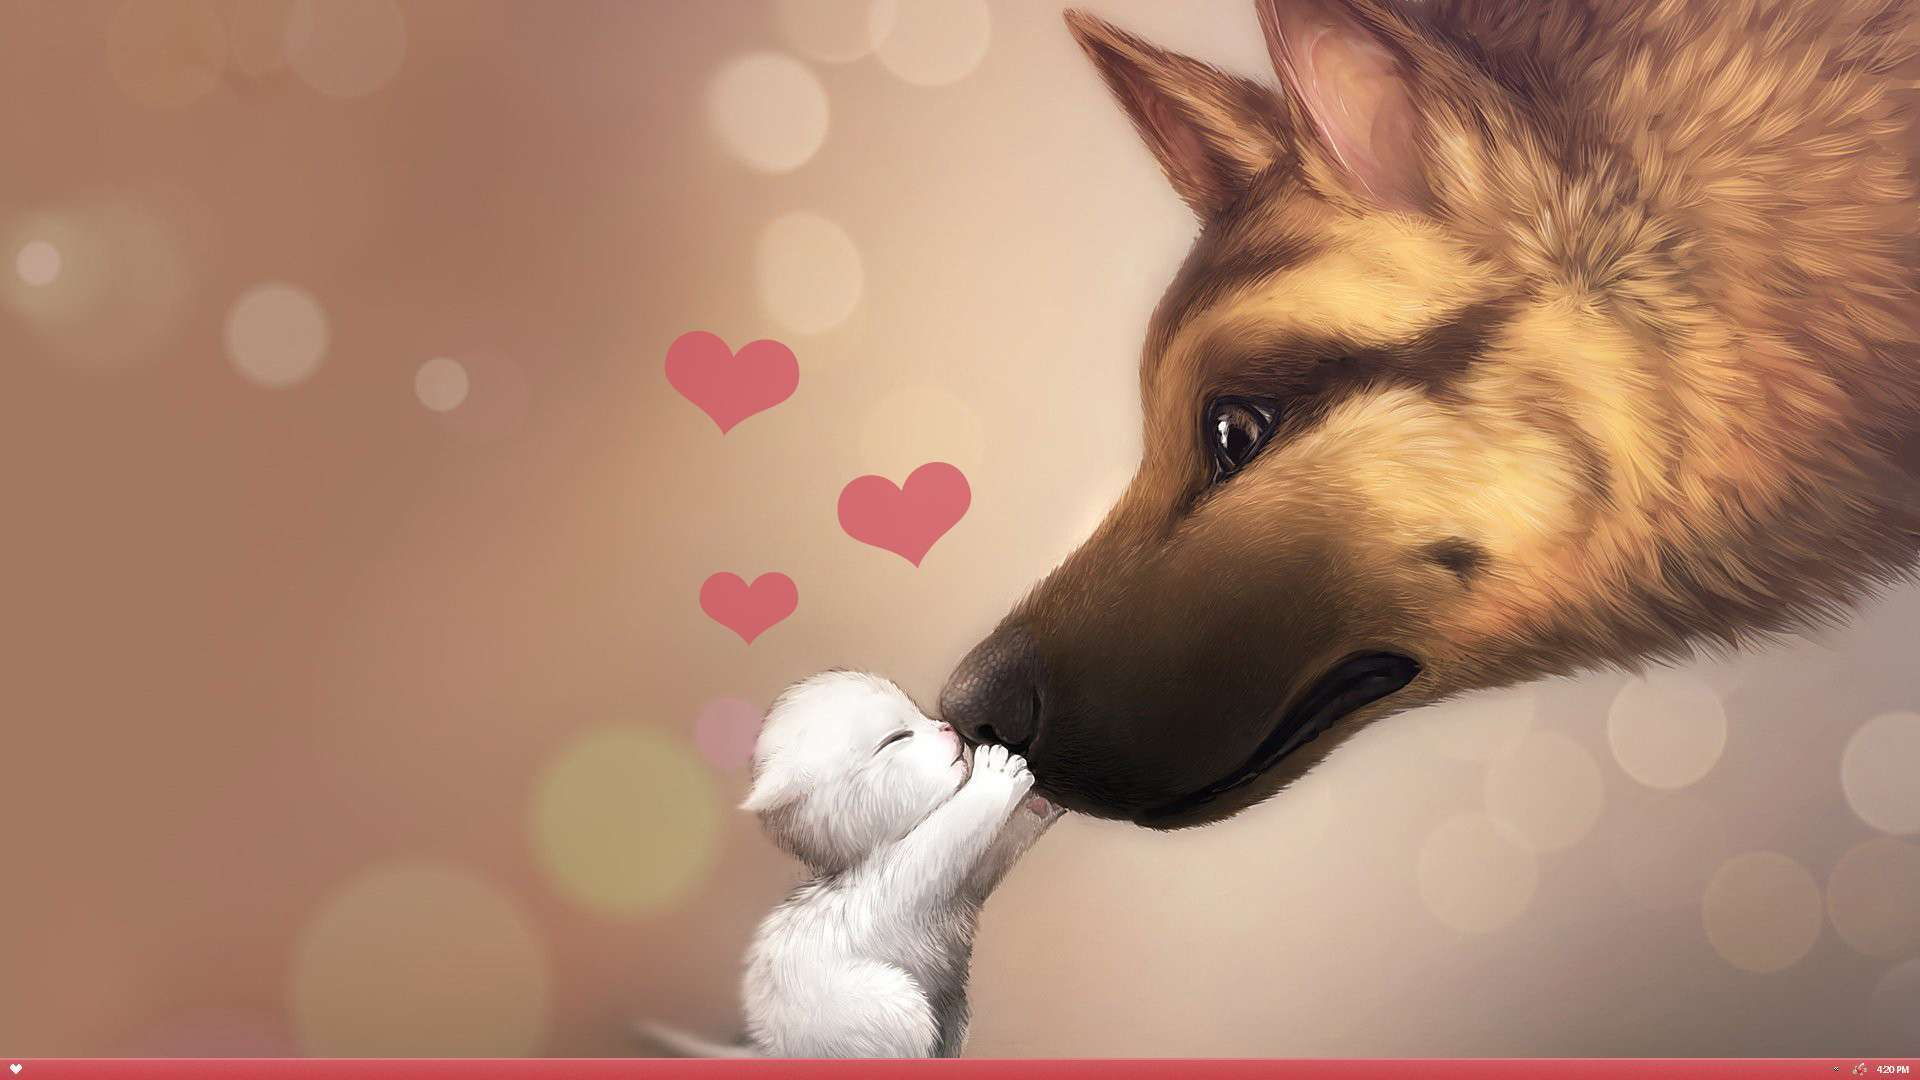 Valentine Day Wallpaper Puppy Kitten